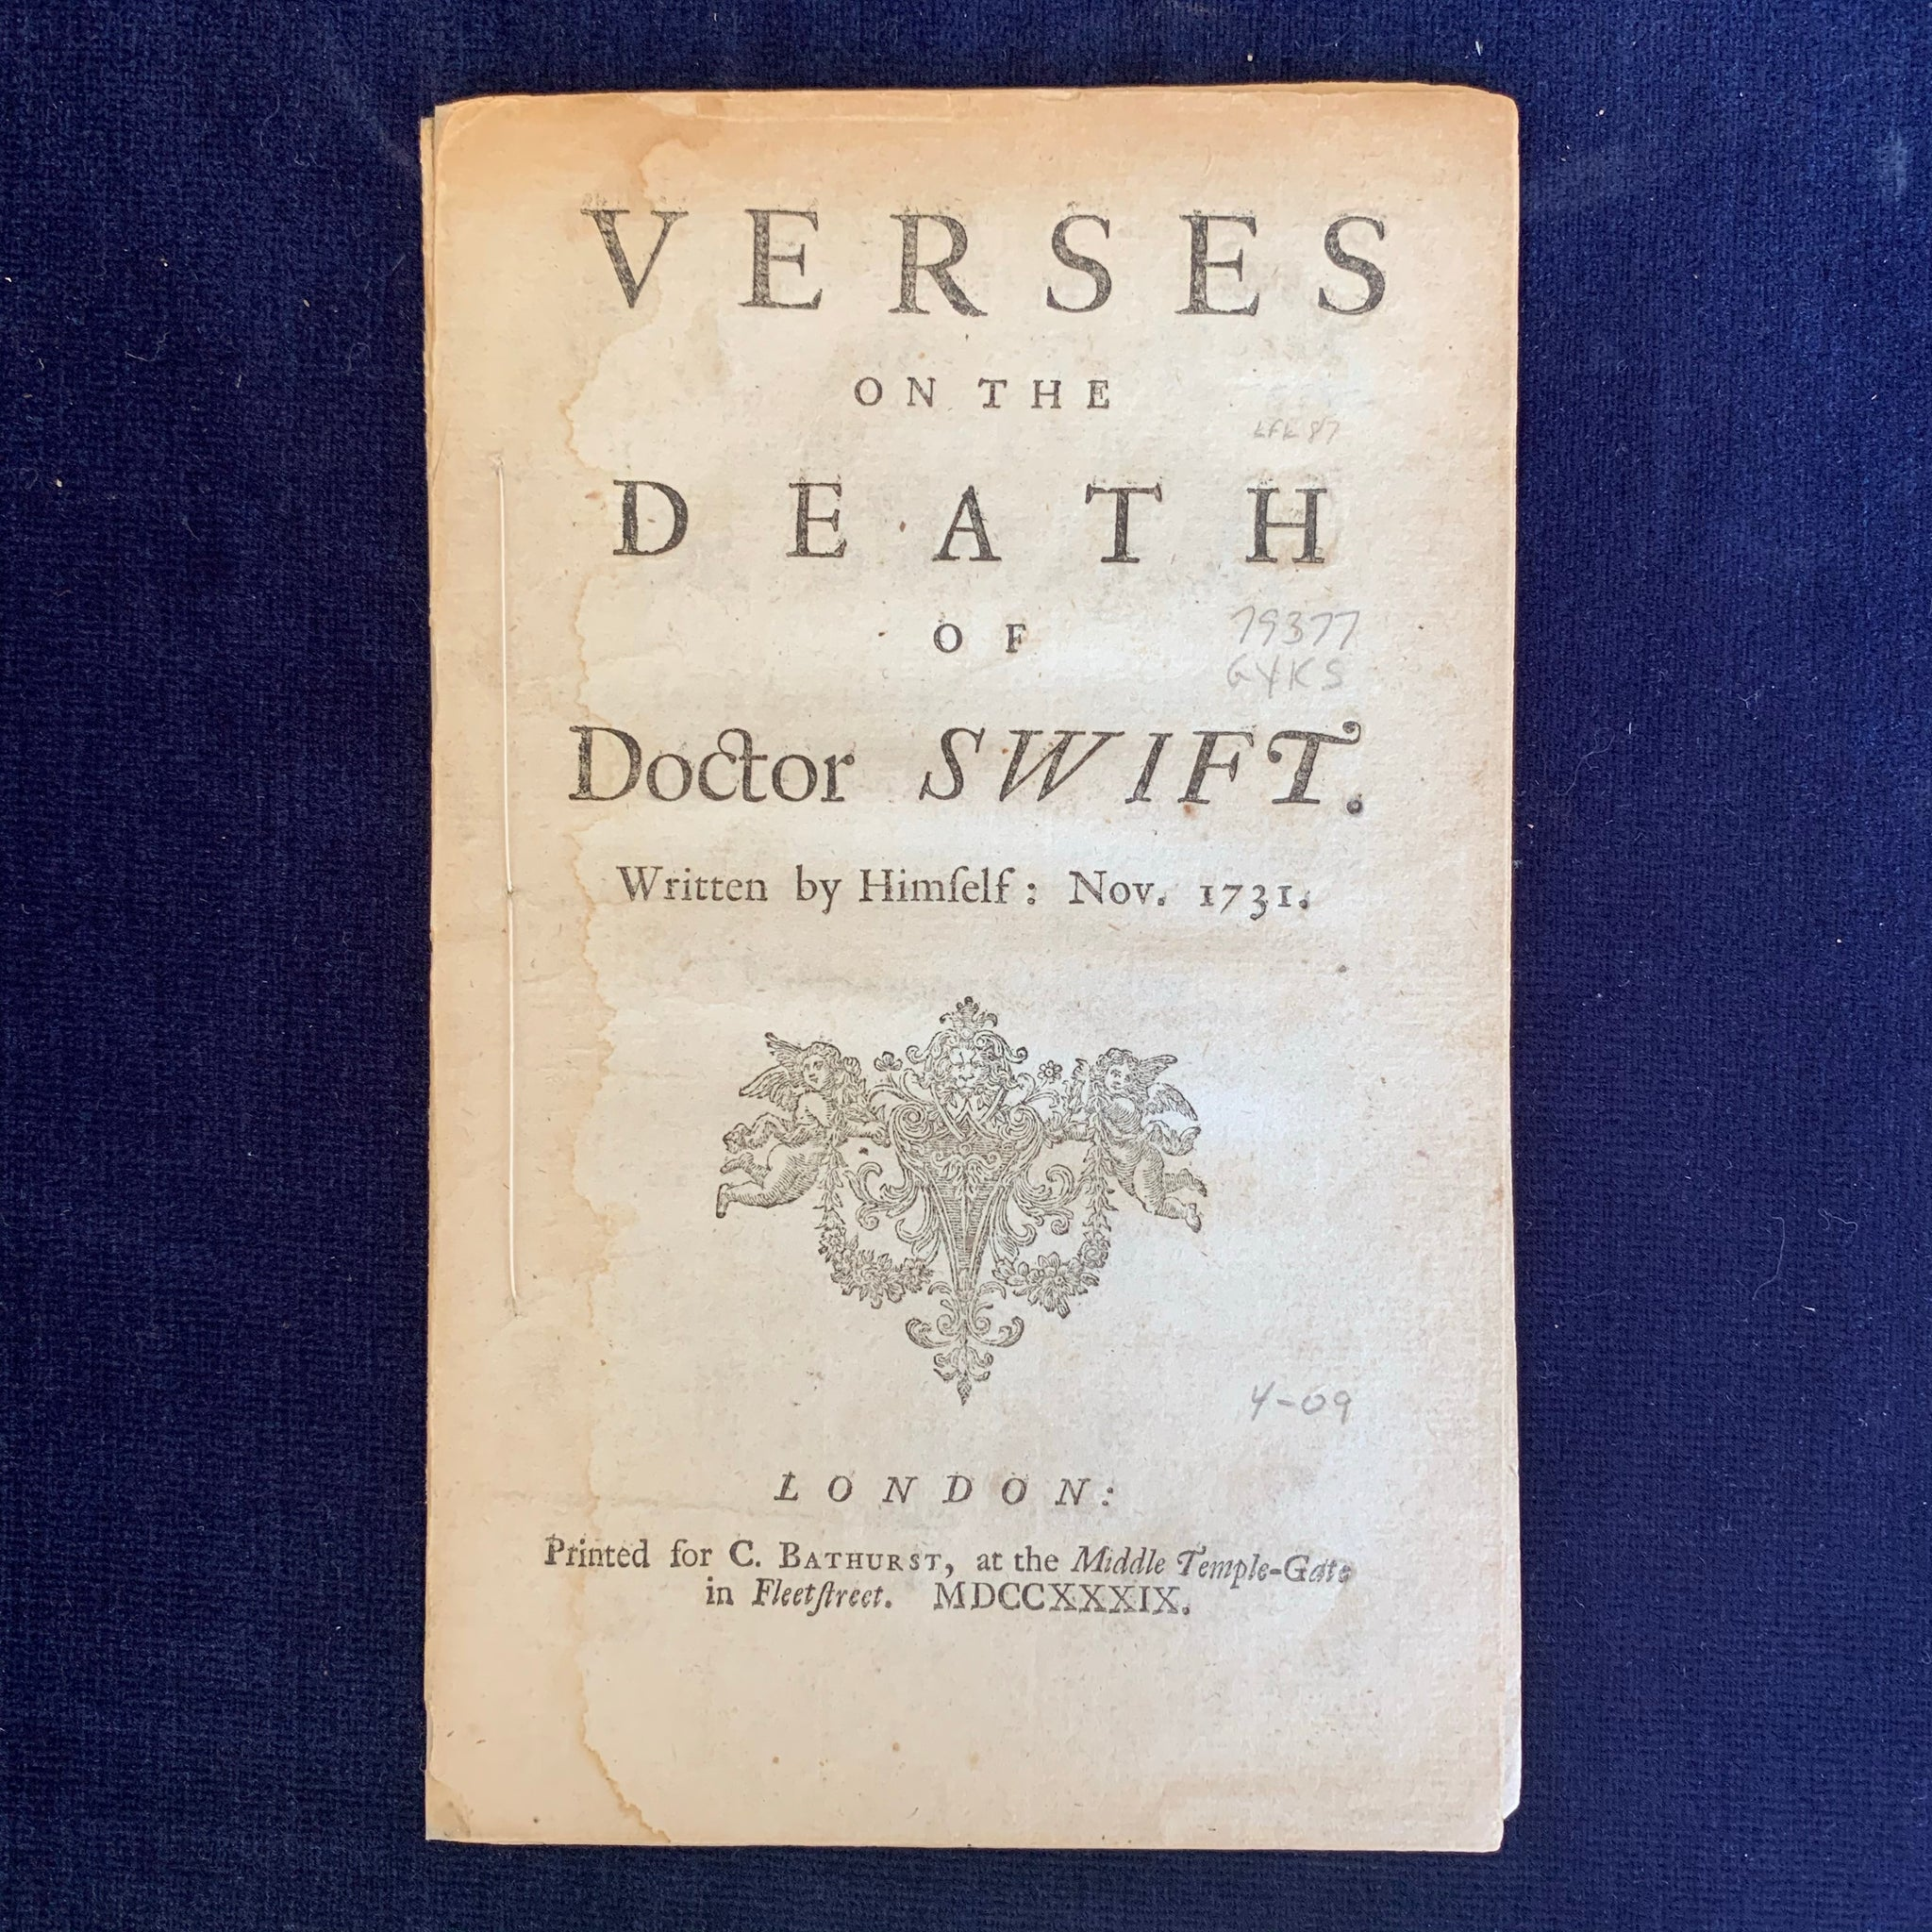 Verses on the Death of Doctor Swift